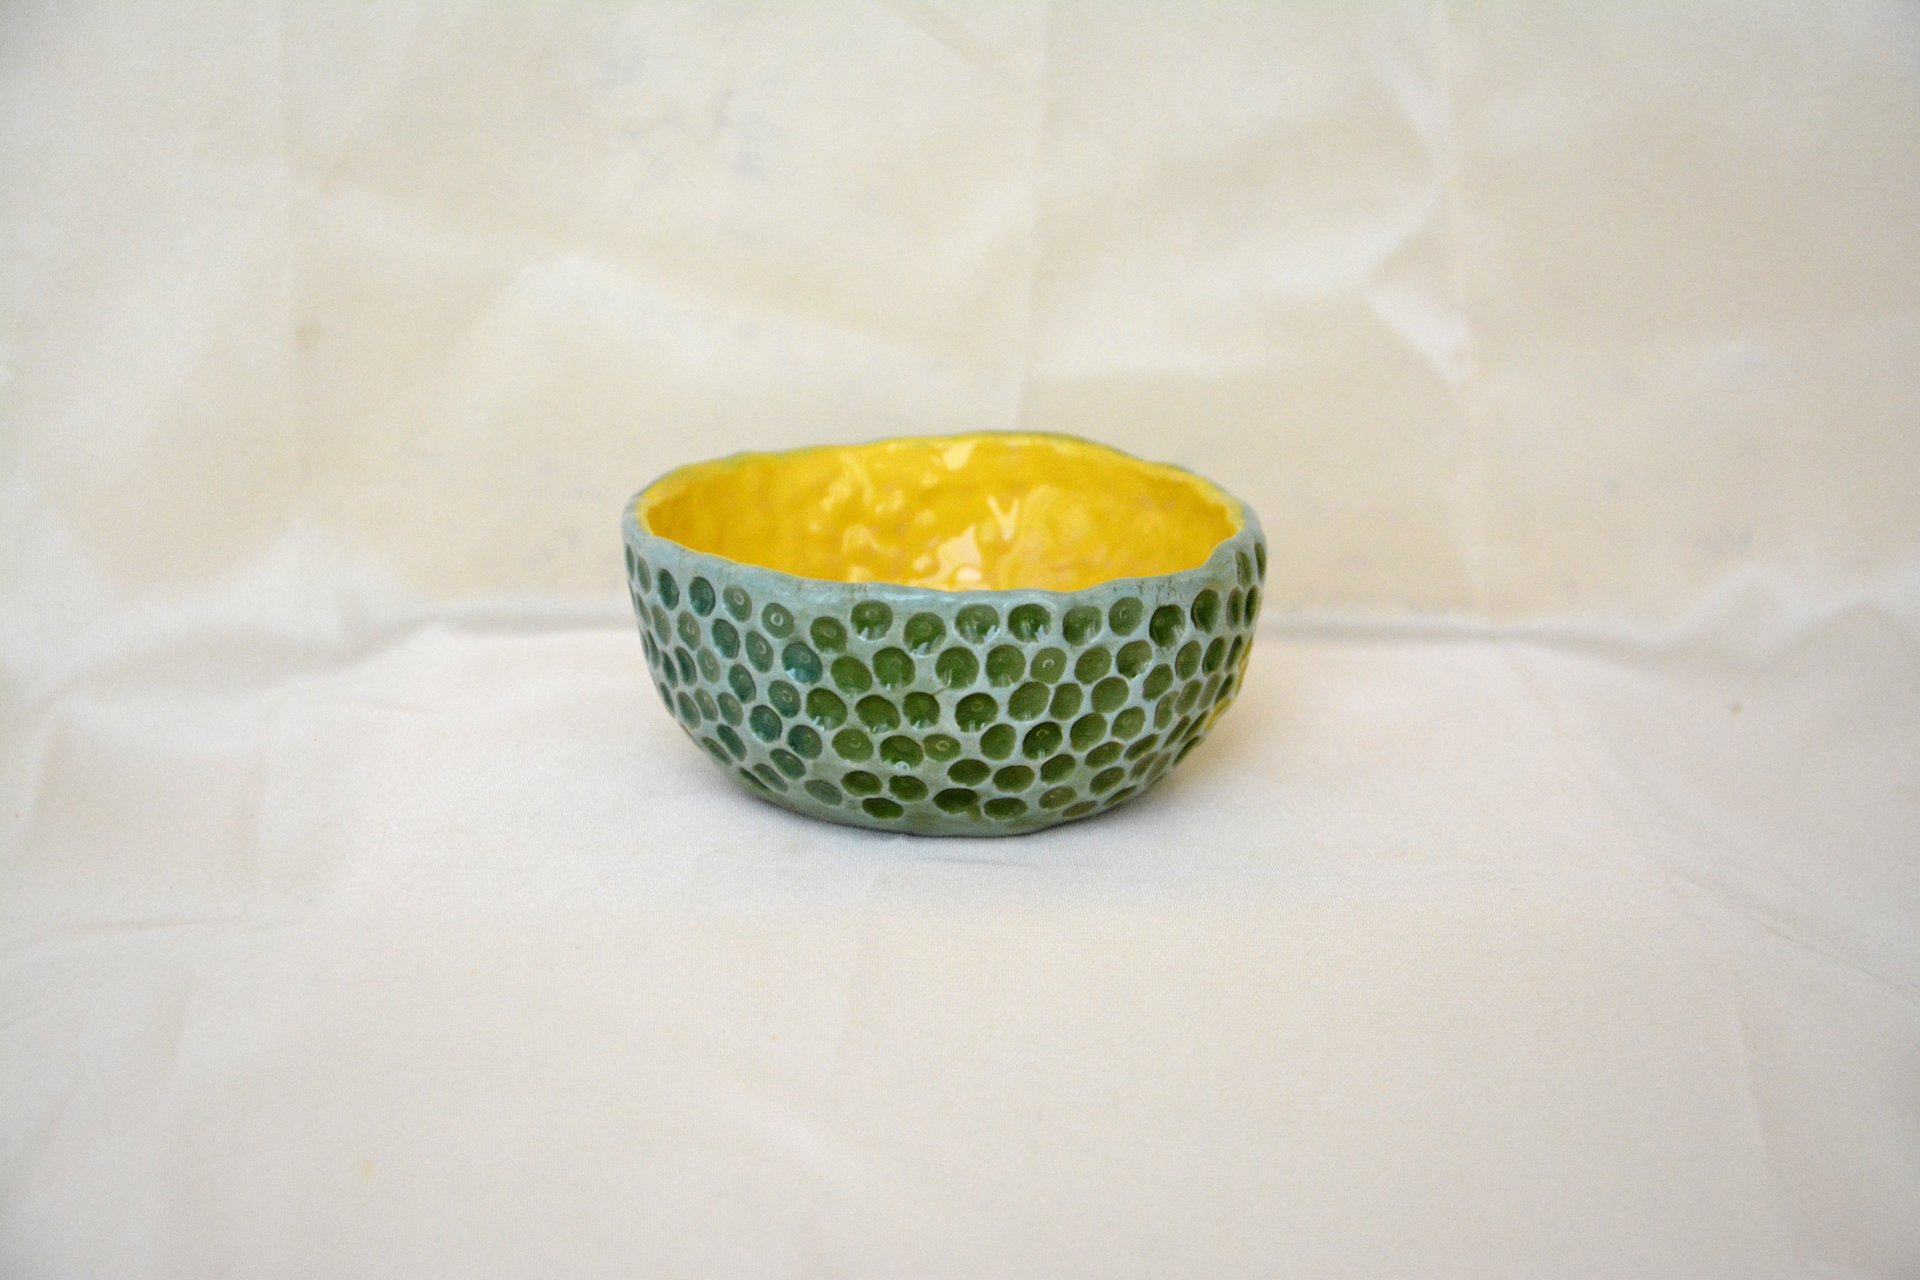 Yellow-blue with textured dots - Pialy and sauceboats, height - 3.5 cm, diameter - 8.5 cm, photo 2 of 3.